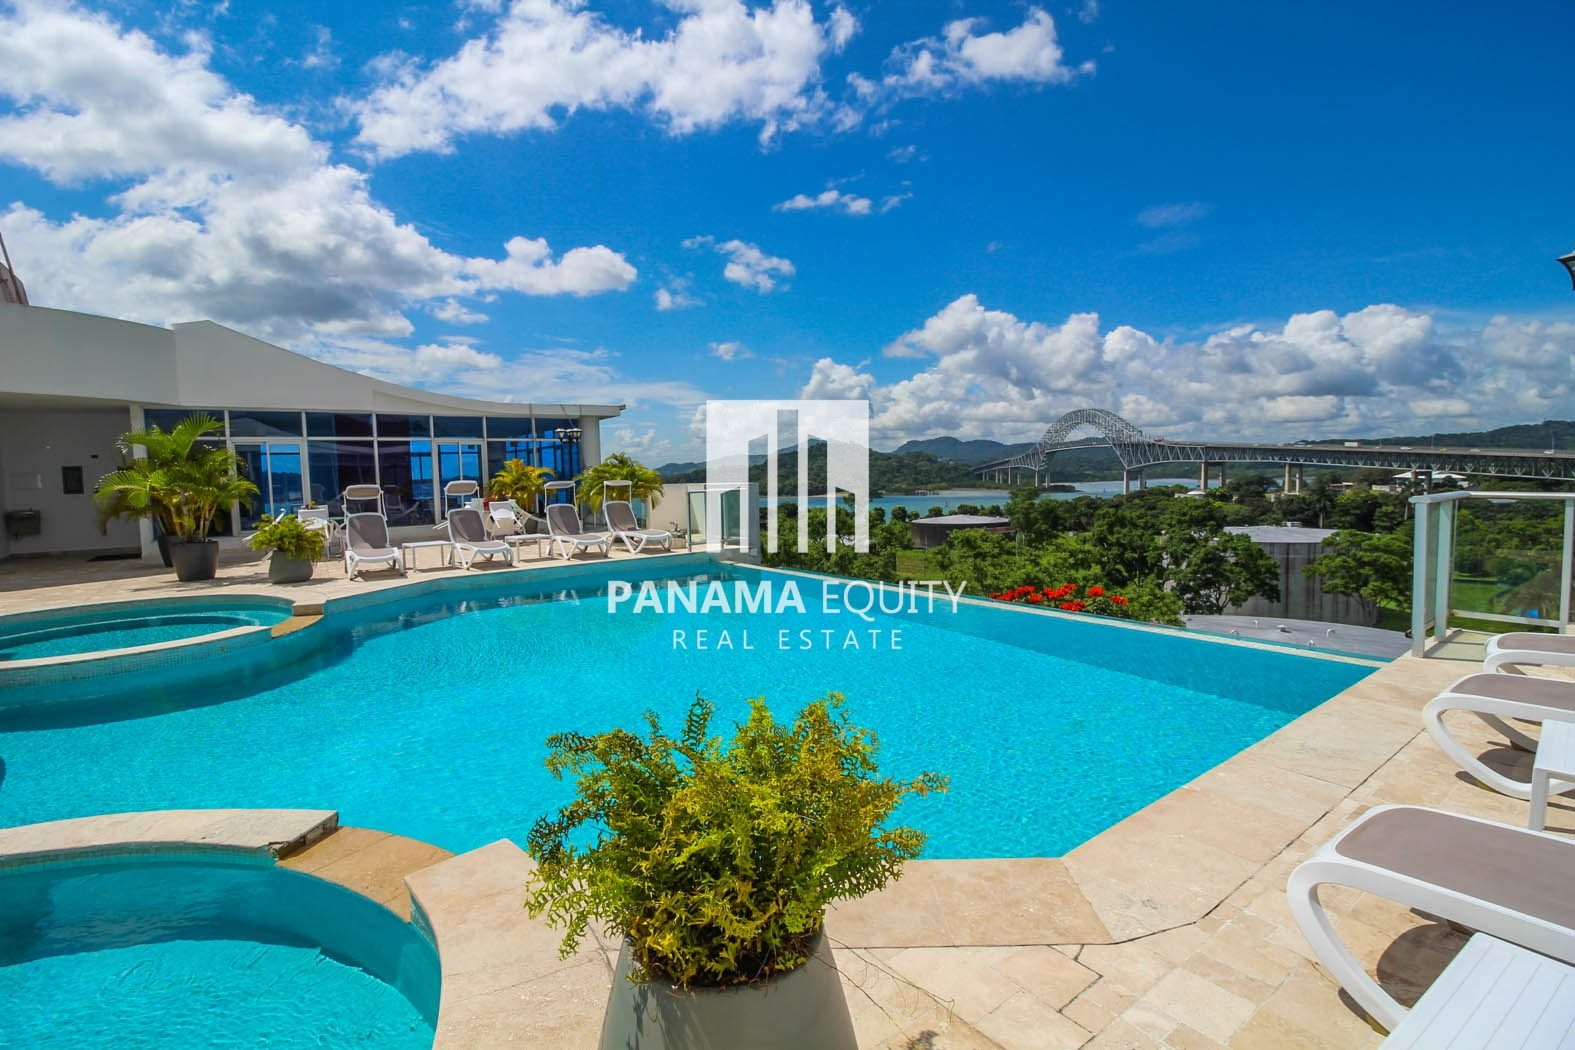 Stunning Views Of The Bridge + Pacific on this partially furnished apartment for rent in Amador